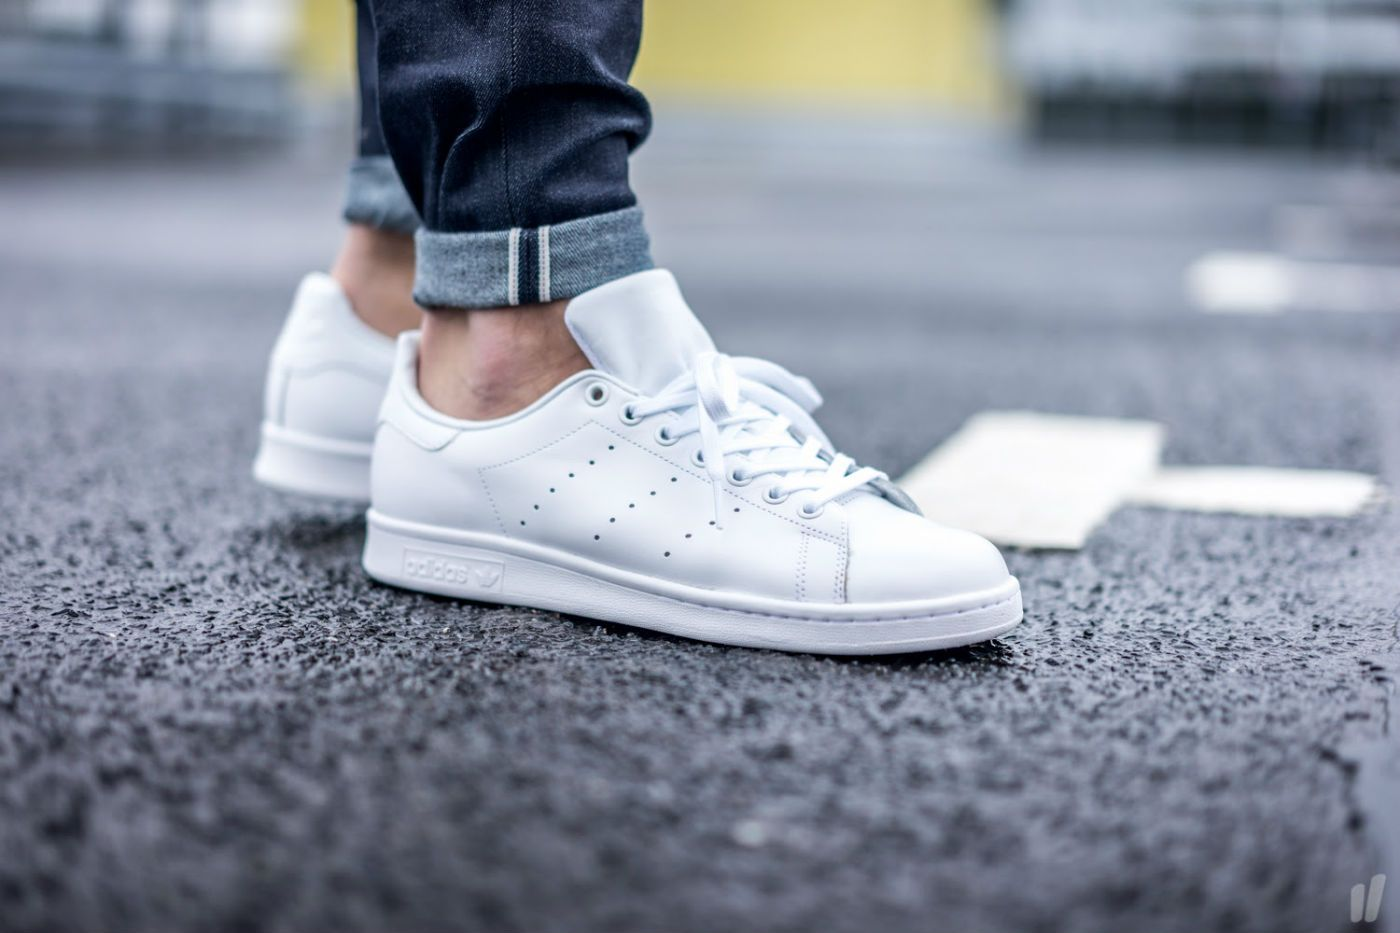 Adidas Stan Smith Full Reflective Pack Cool Sneakers